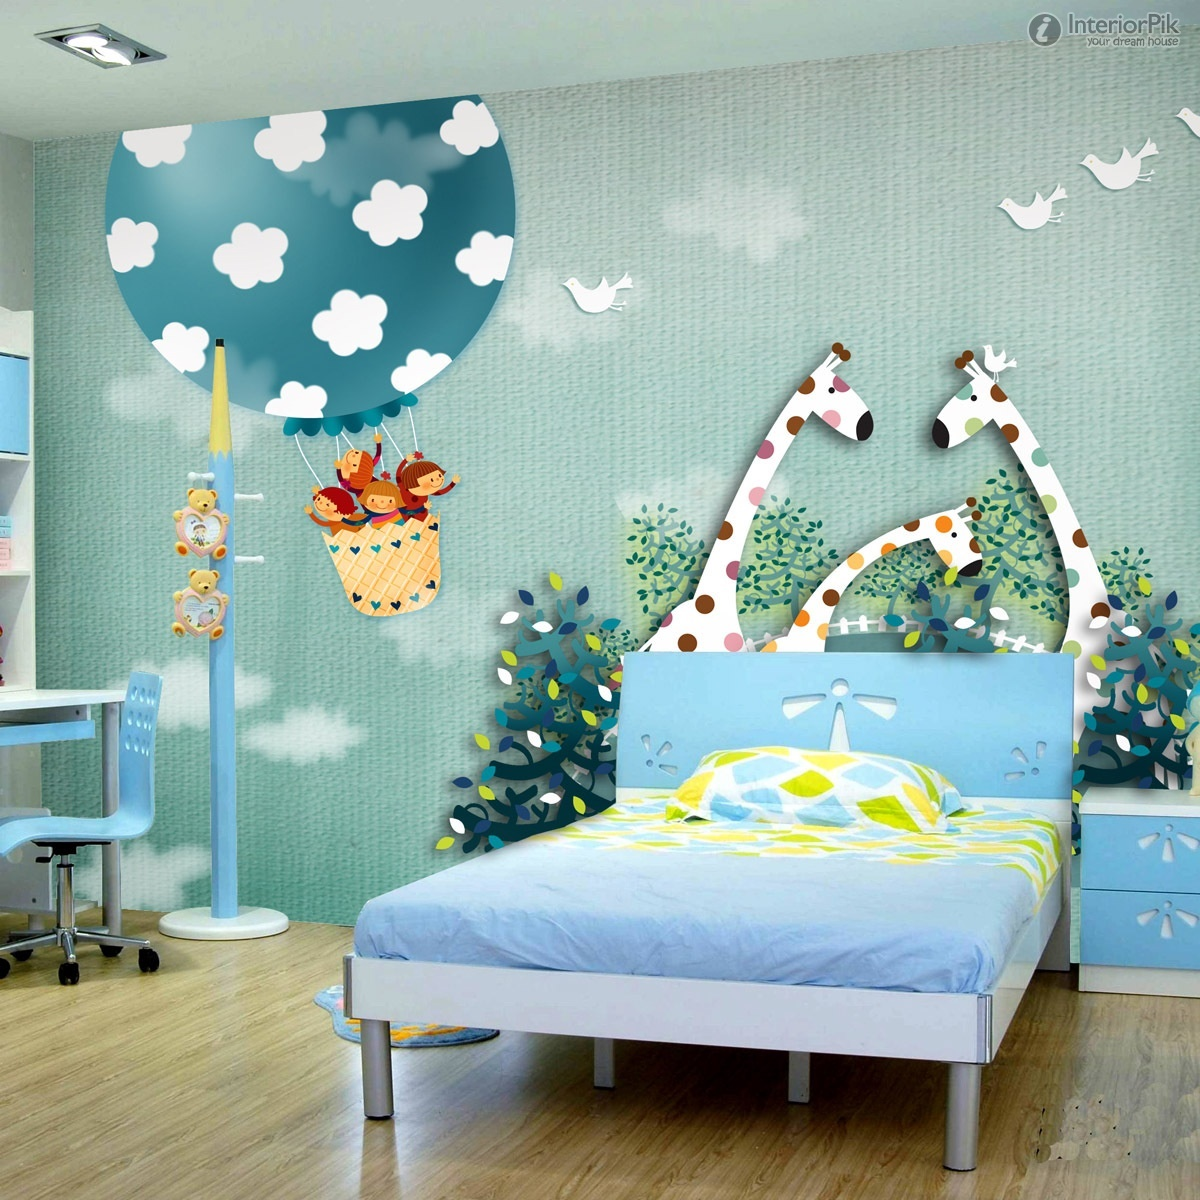 Childrens bedroom wallpaper ideas home decor uk for Bedroom mural designs